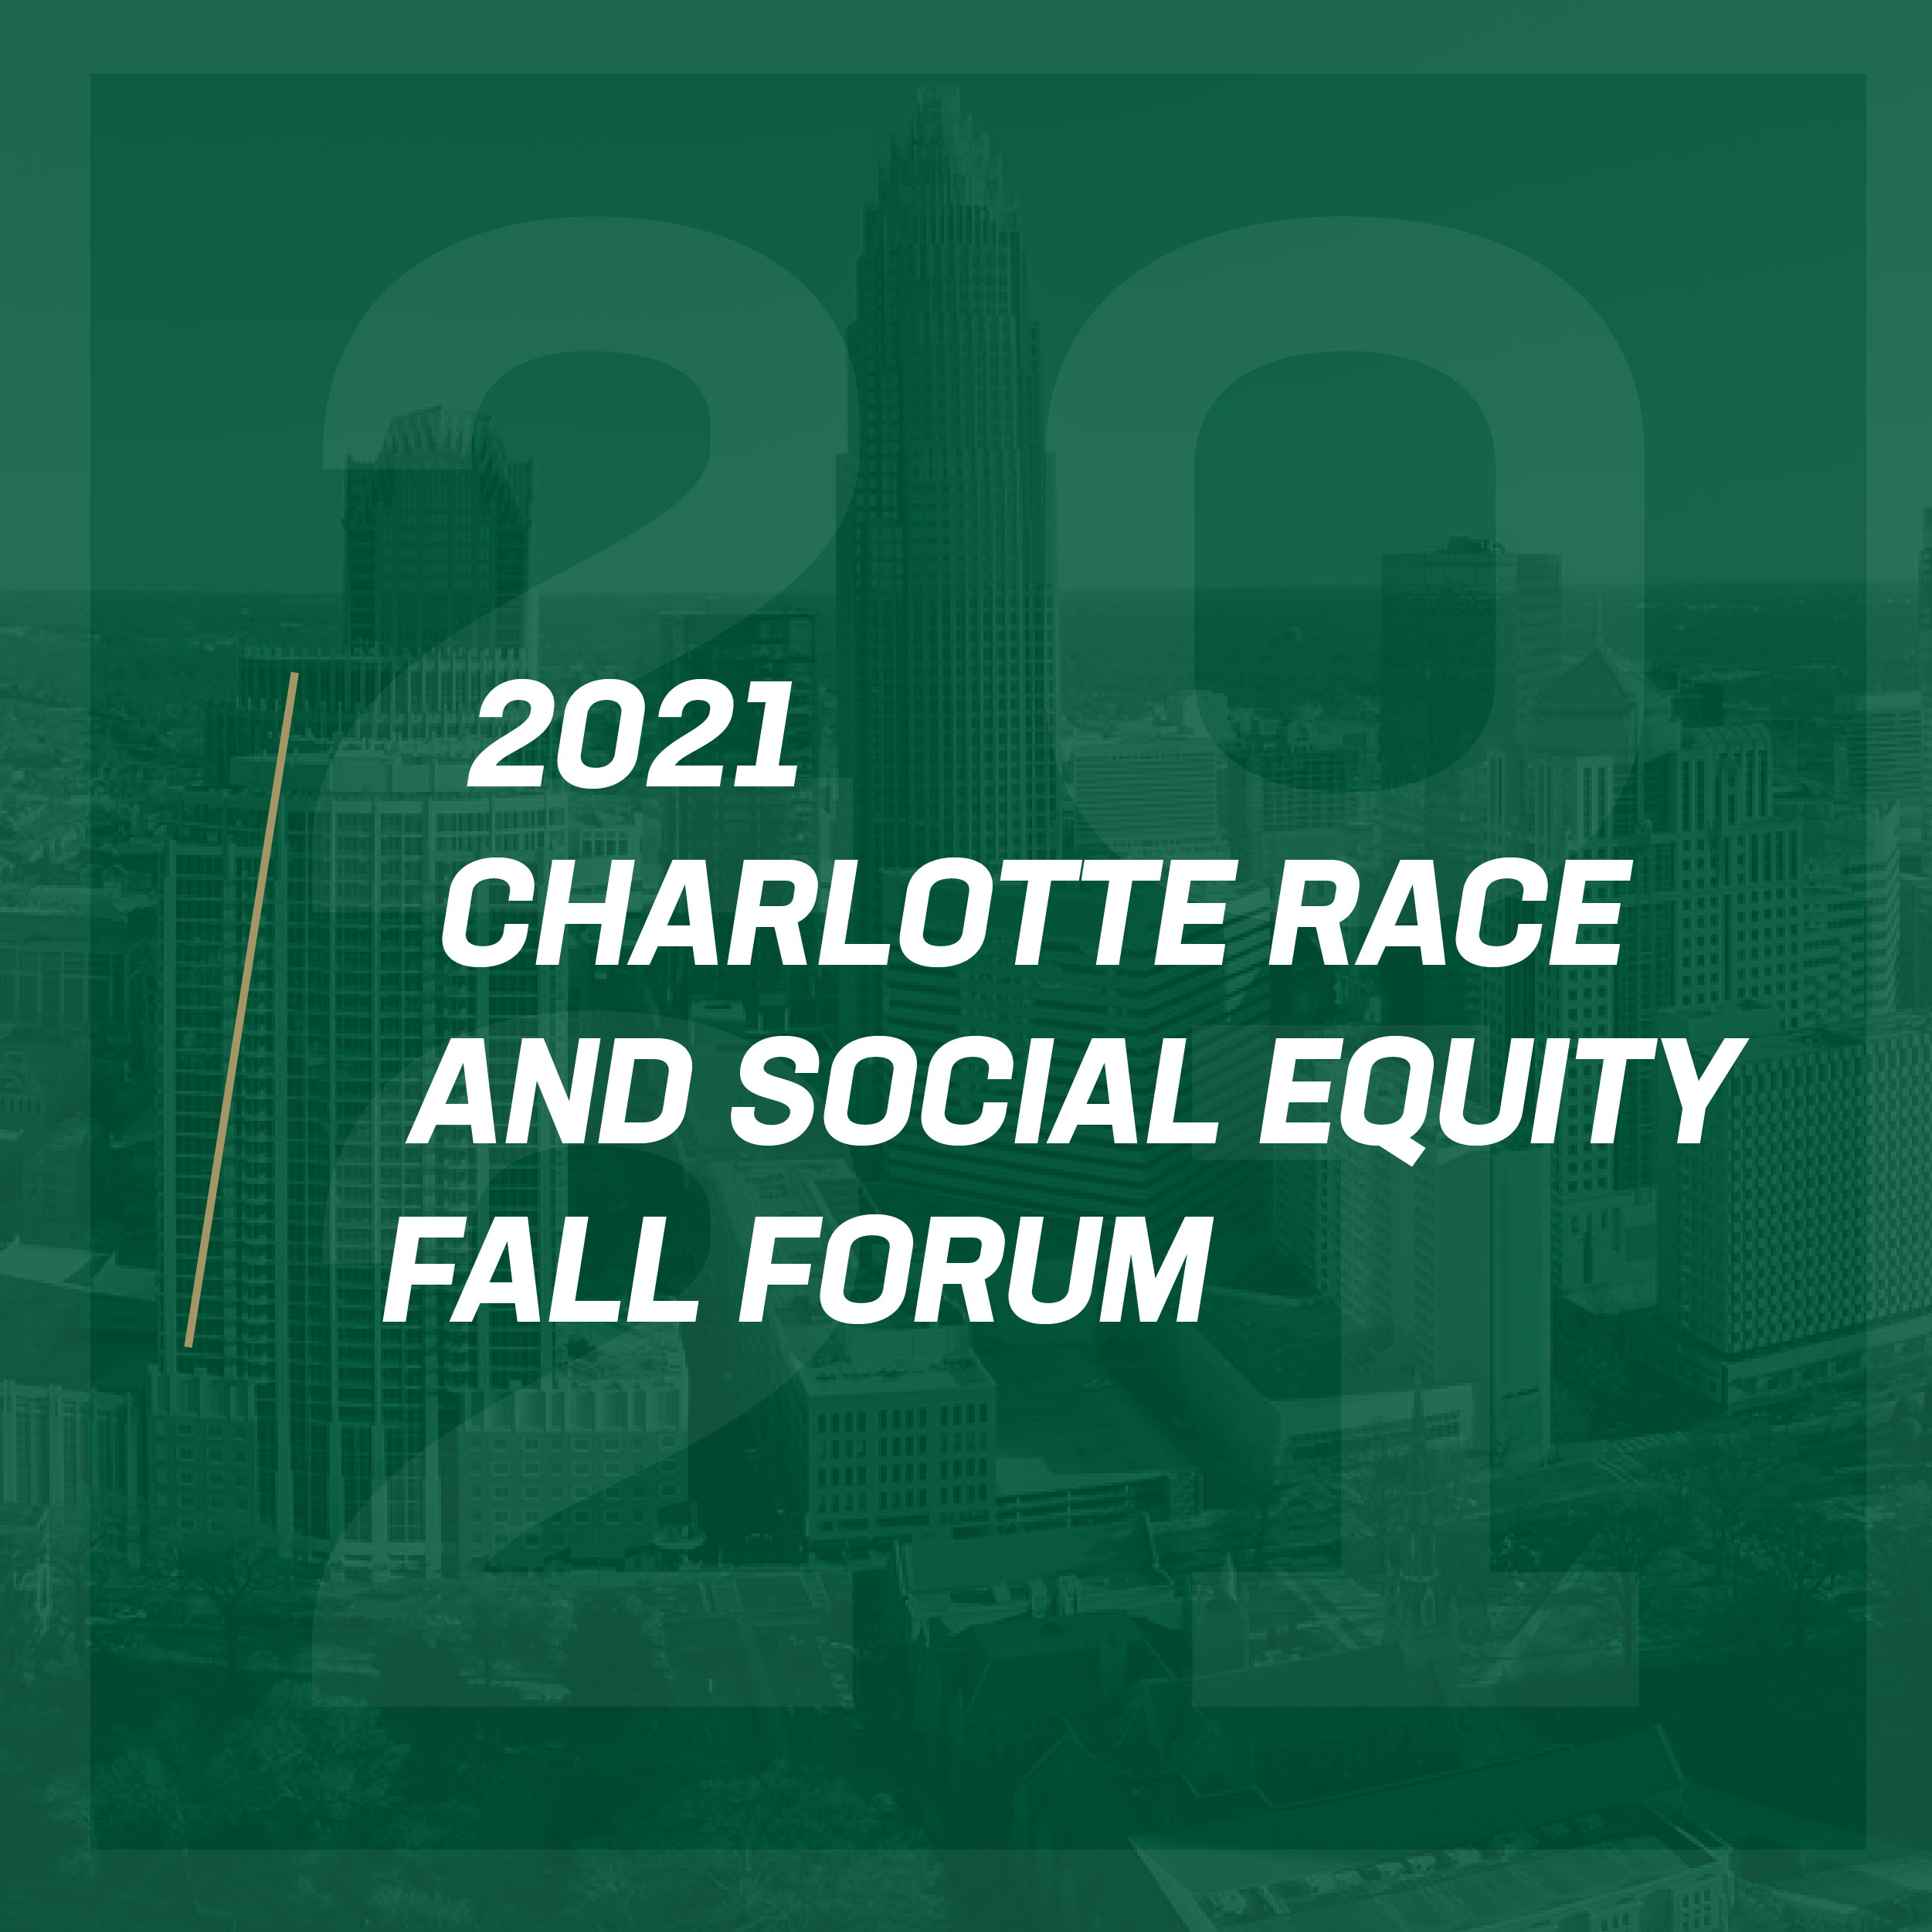 2021 Charlotte Race and Social Equity Fall Forum